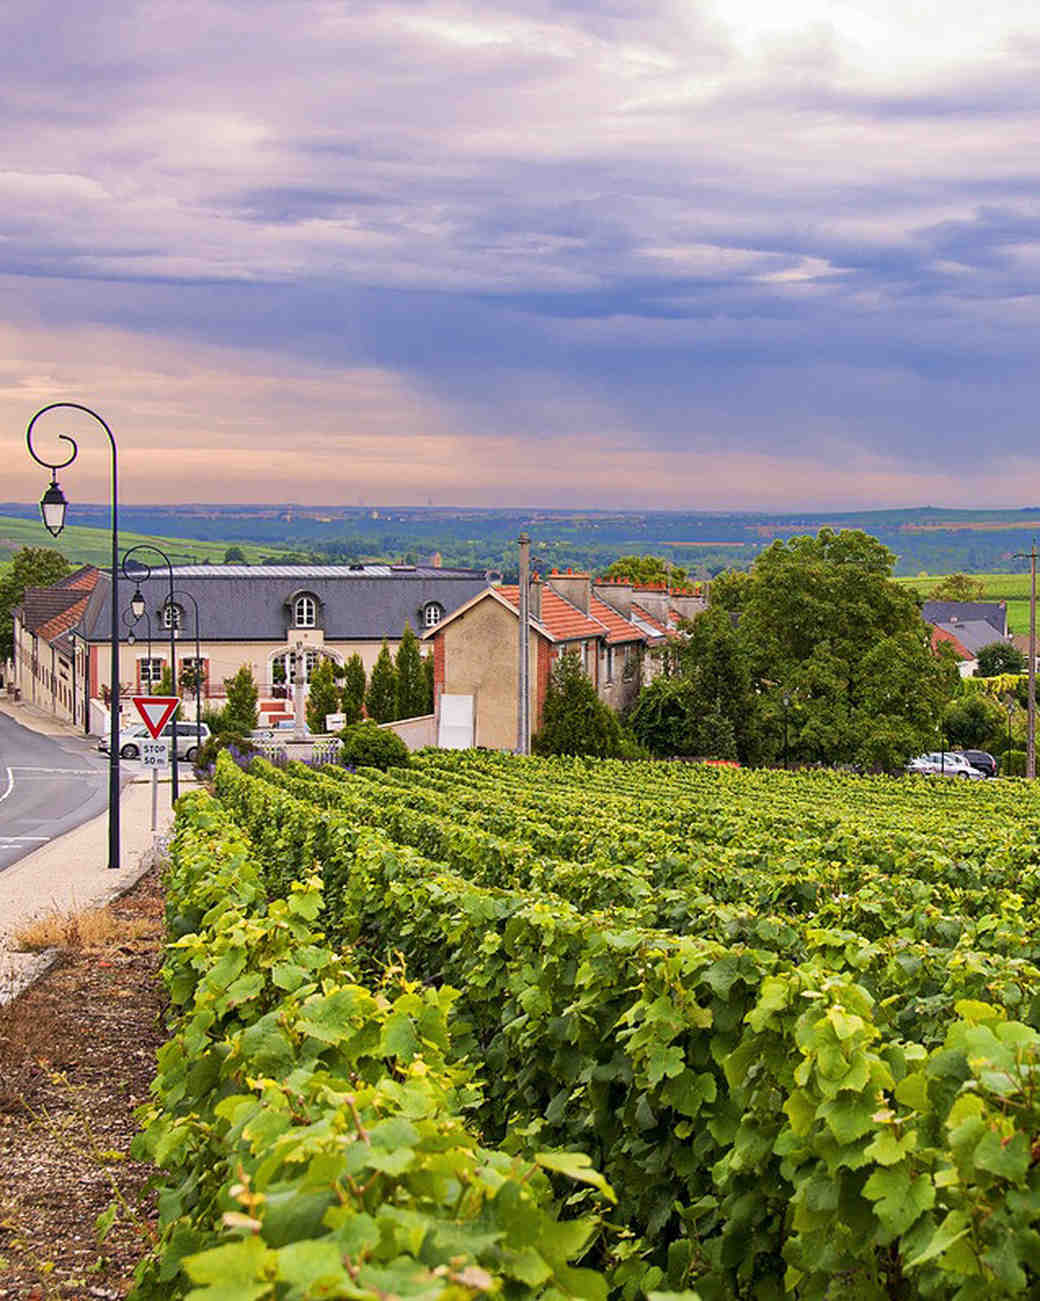 romantic destination france epernay champagne